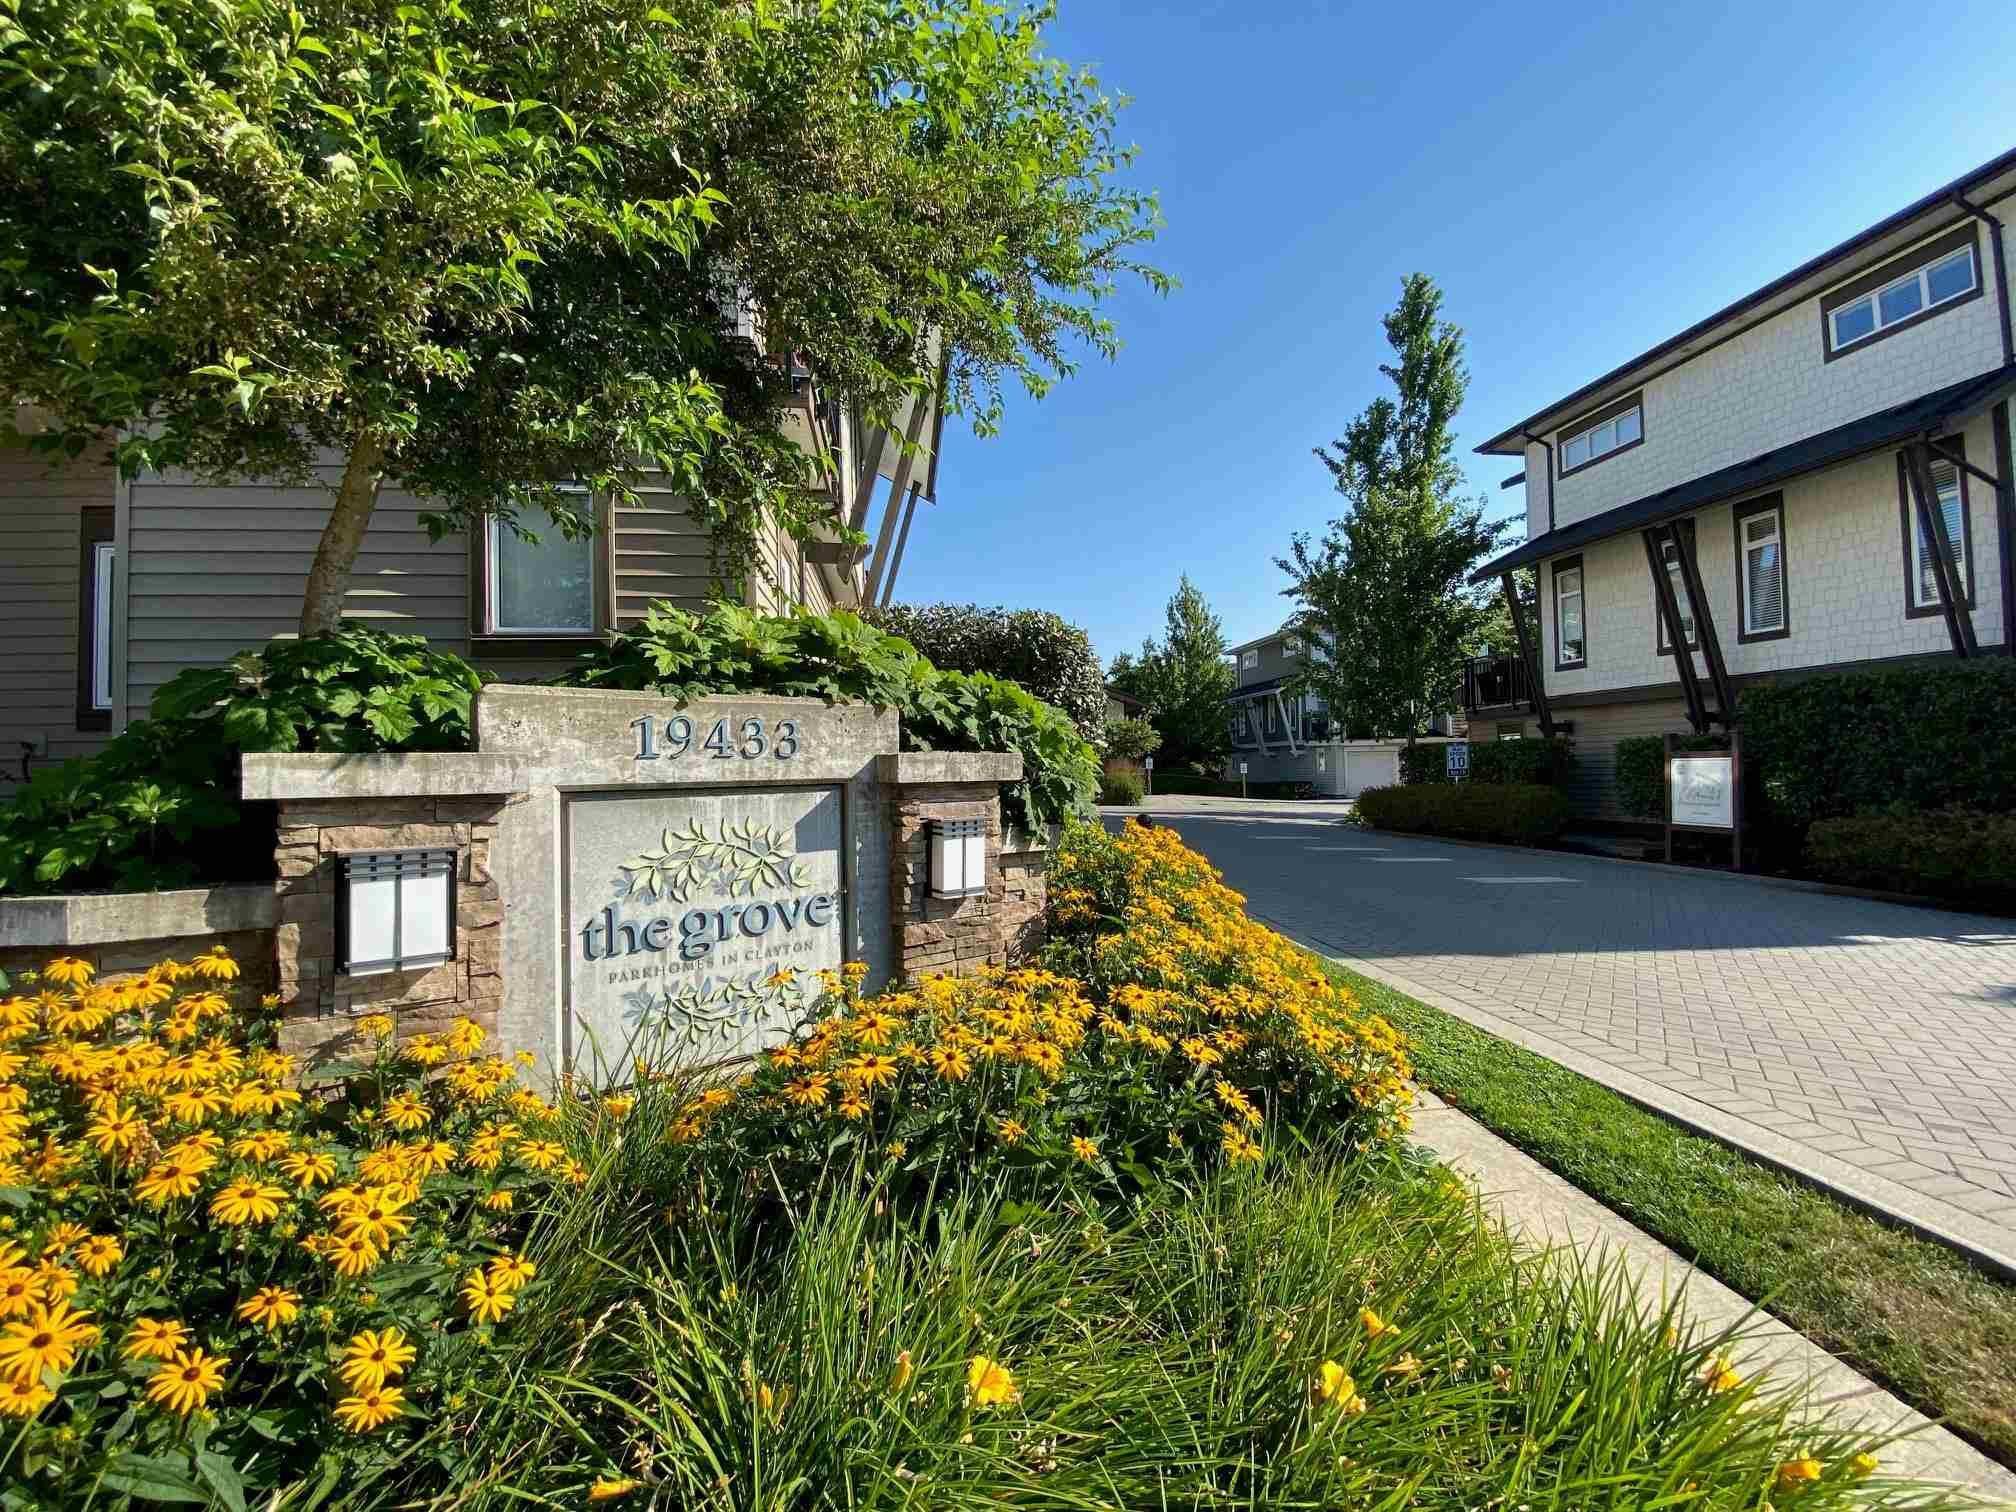 """Main Photo: 134 19433 68TH Avenue in Surrey: Clayton Townhouse for sale in """"The Grove"""" (Cloverdale)  : MLS®# R2599425"""